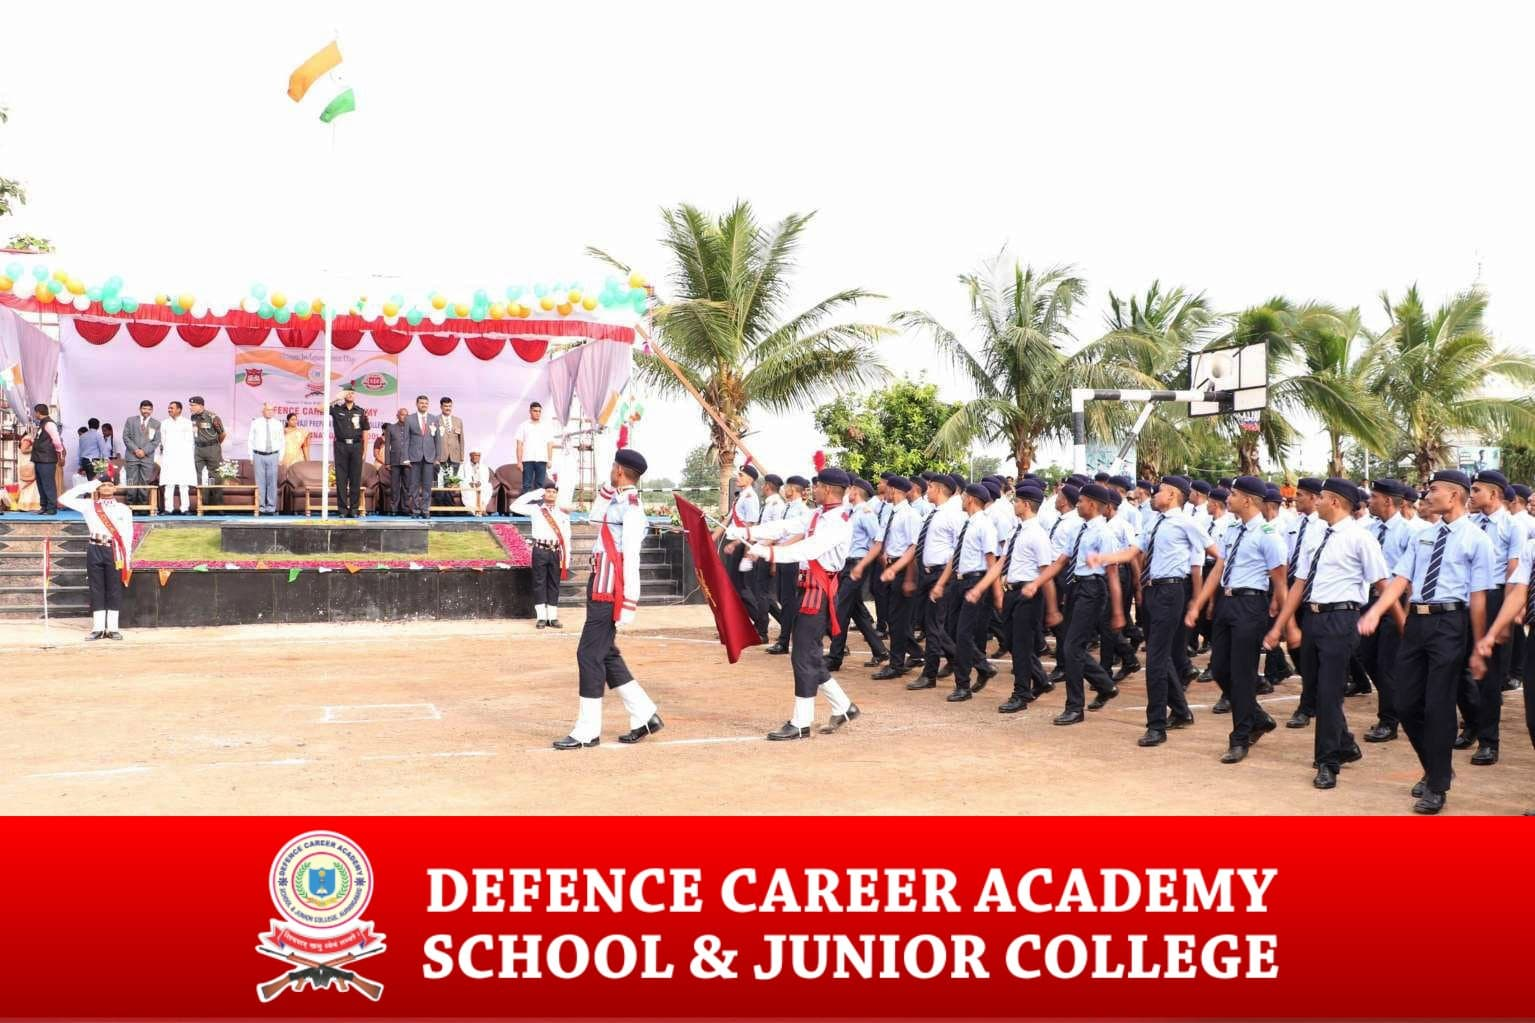 defence-career-academy-in-maharashtra-top-military-academies-in-aurangabad-salute-of-honour